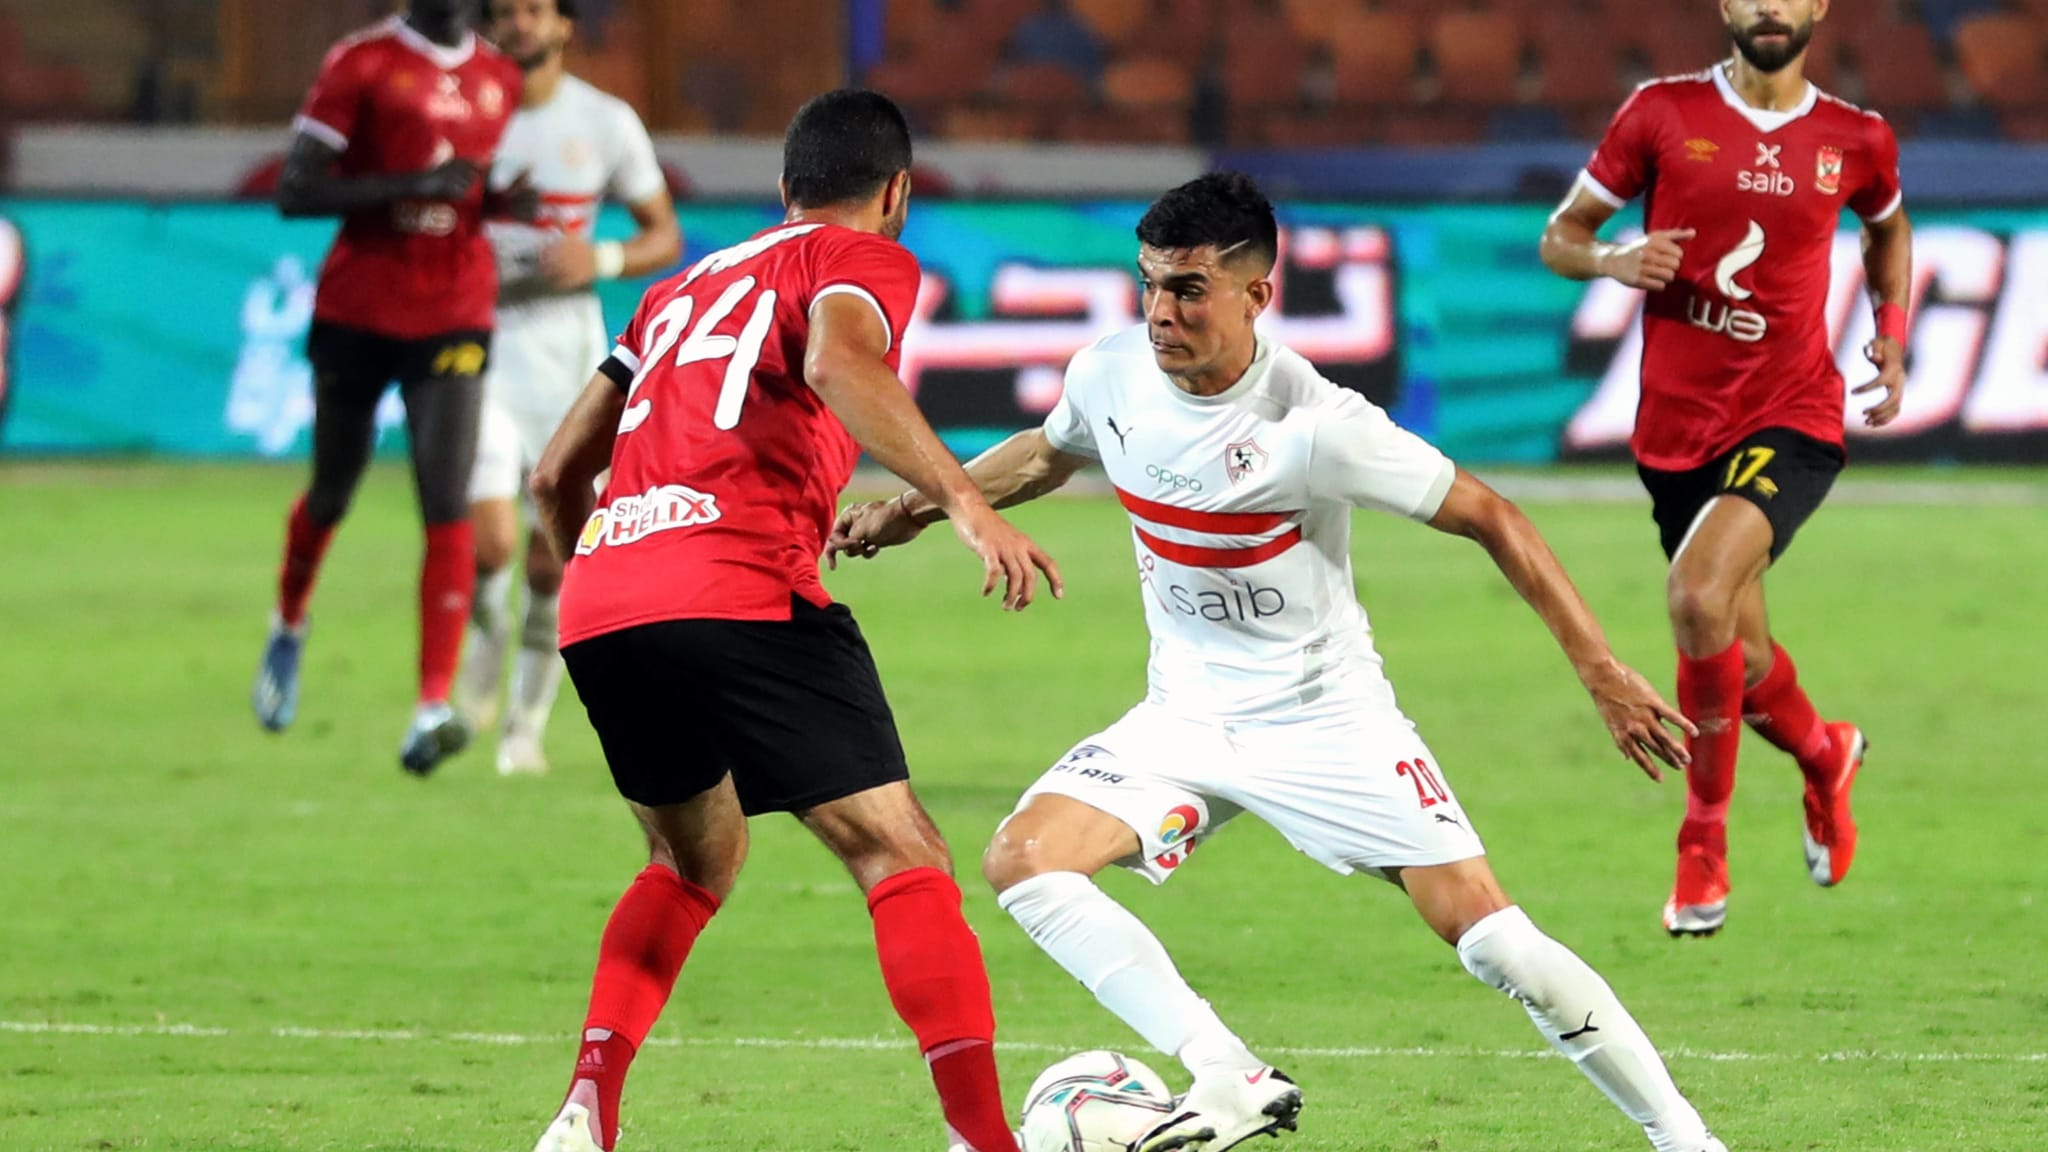 Achraf Bencharki of Zamalek competes with Ahmed Fathy of Al-Ahly